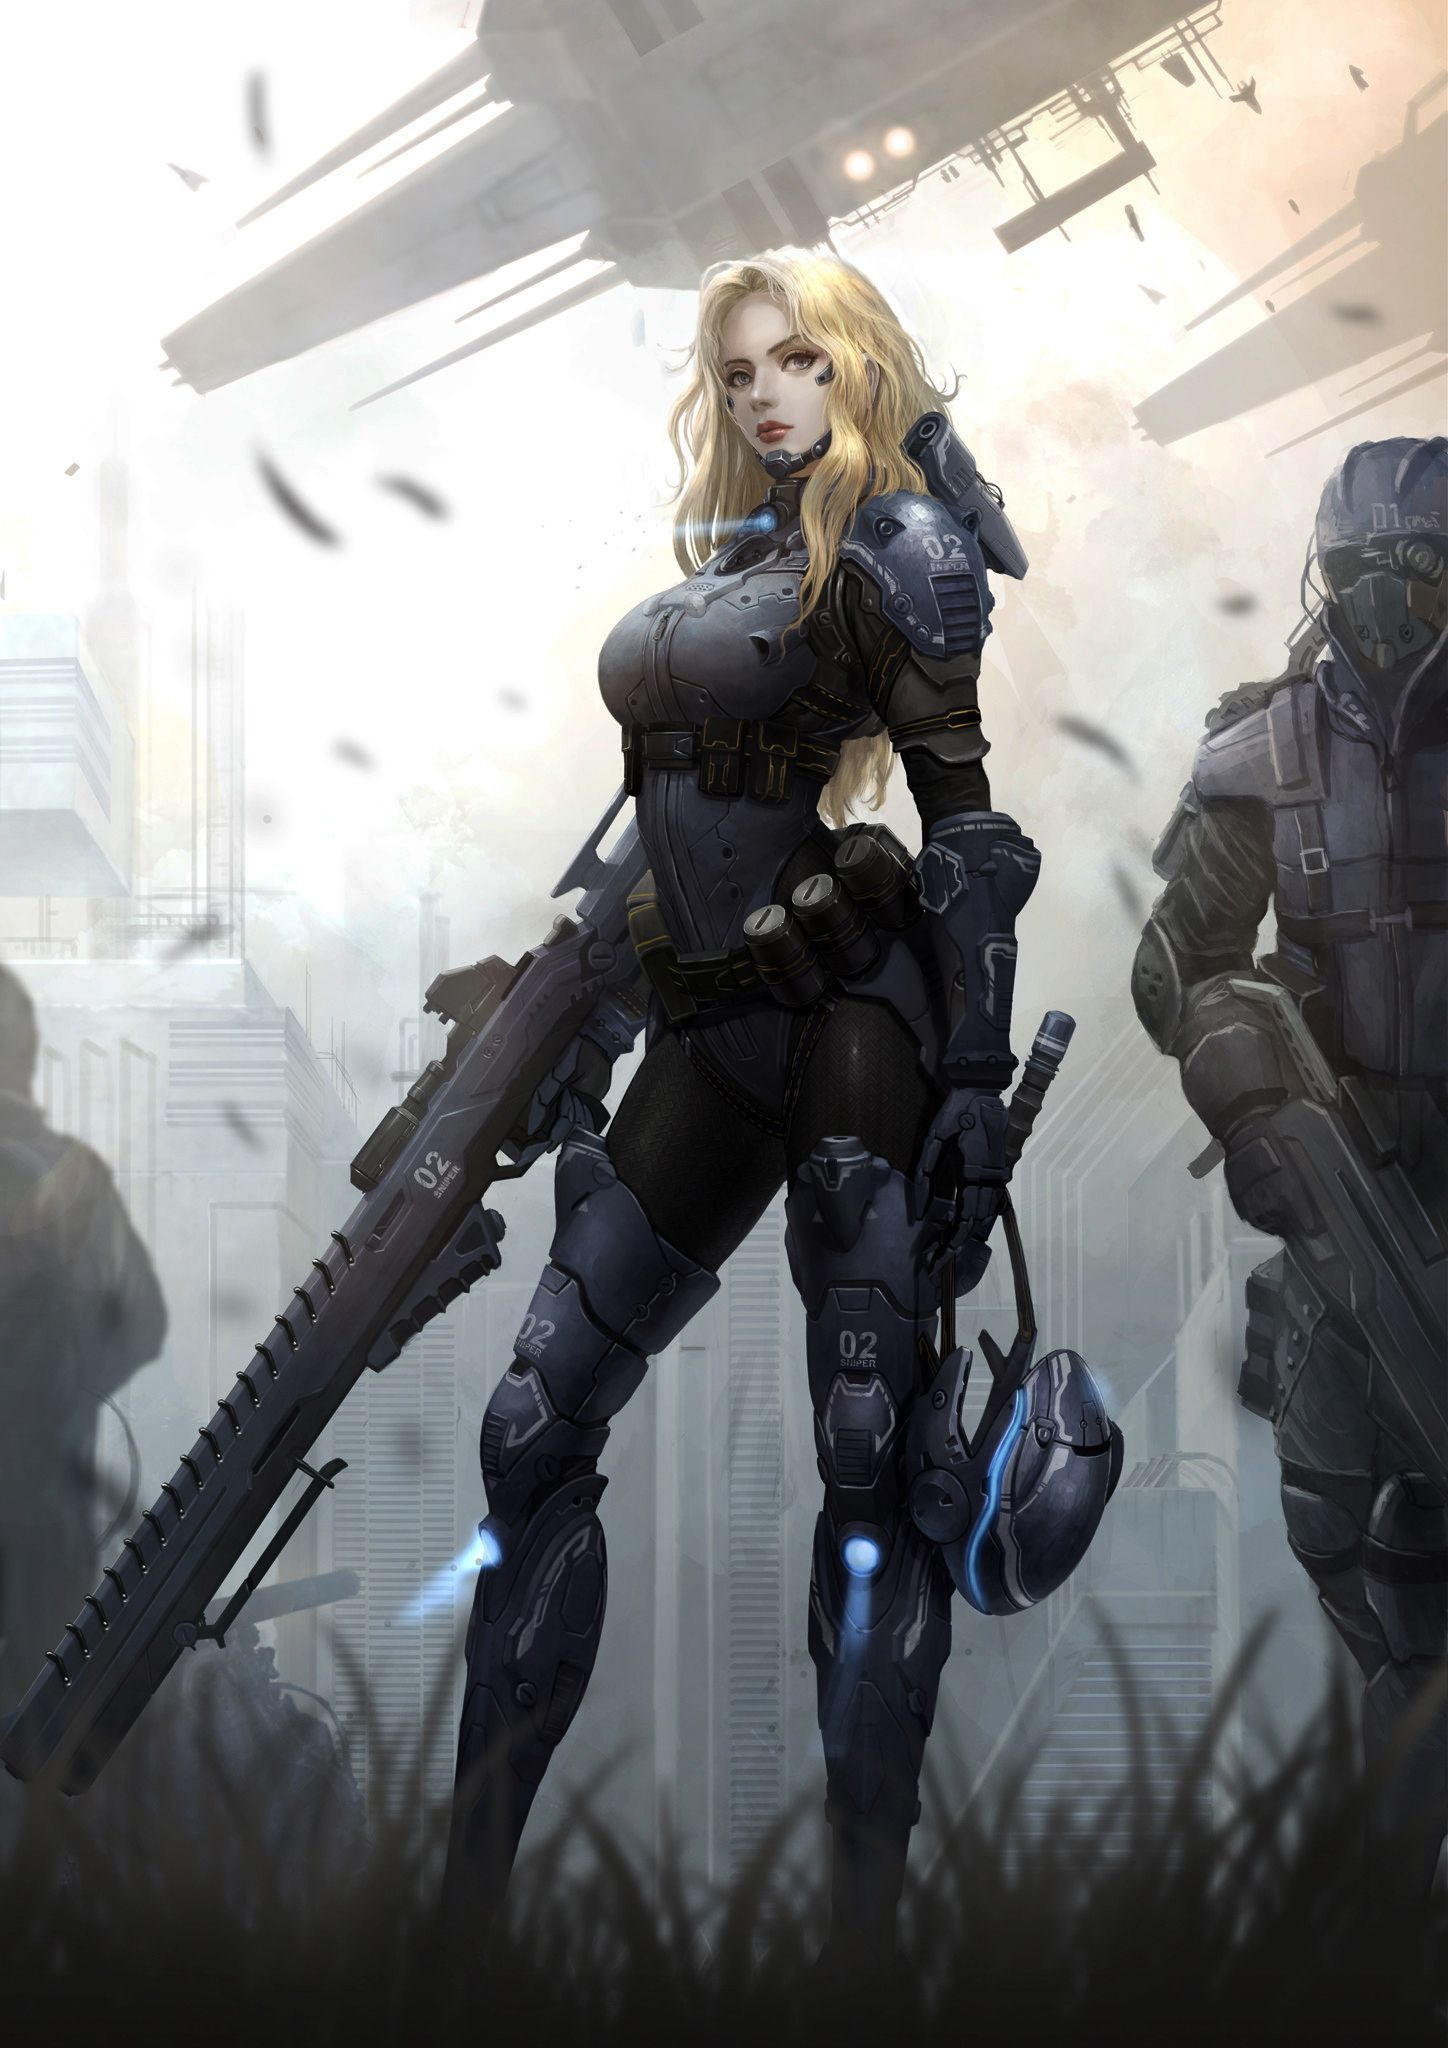 Yoon Lee Sniper Female Exhibition In Ndc Concept Art Characters Warrior Woman Sci Fi Characters